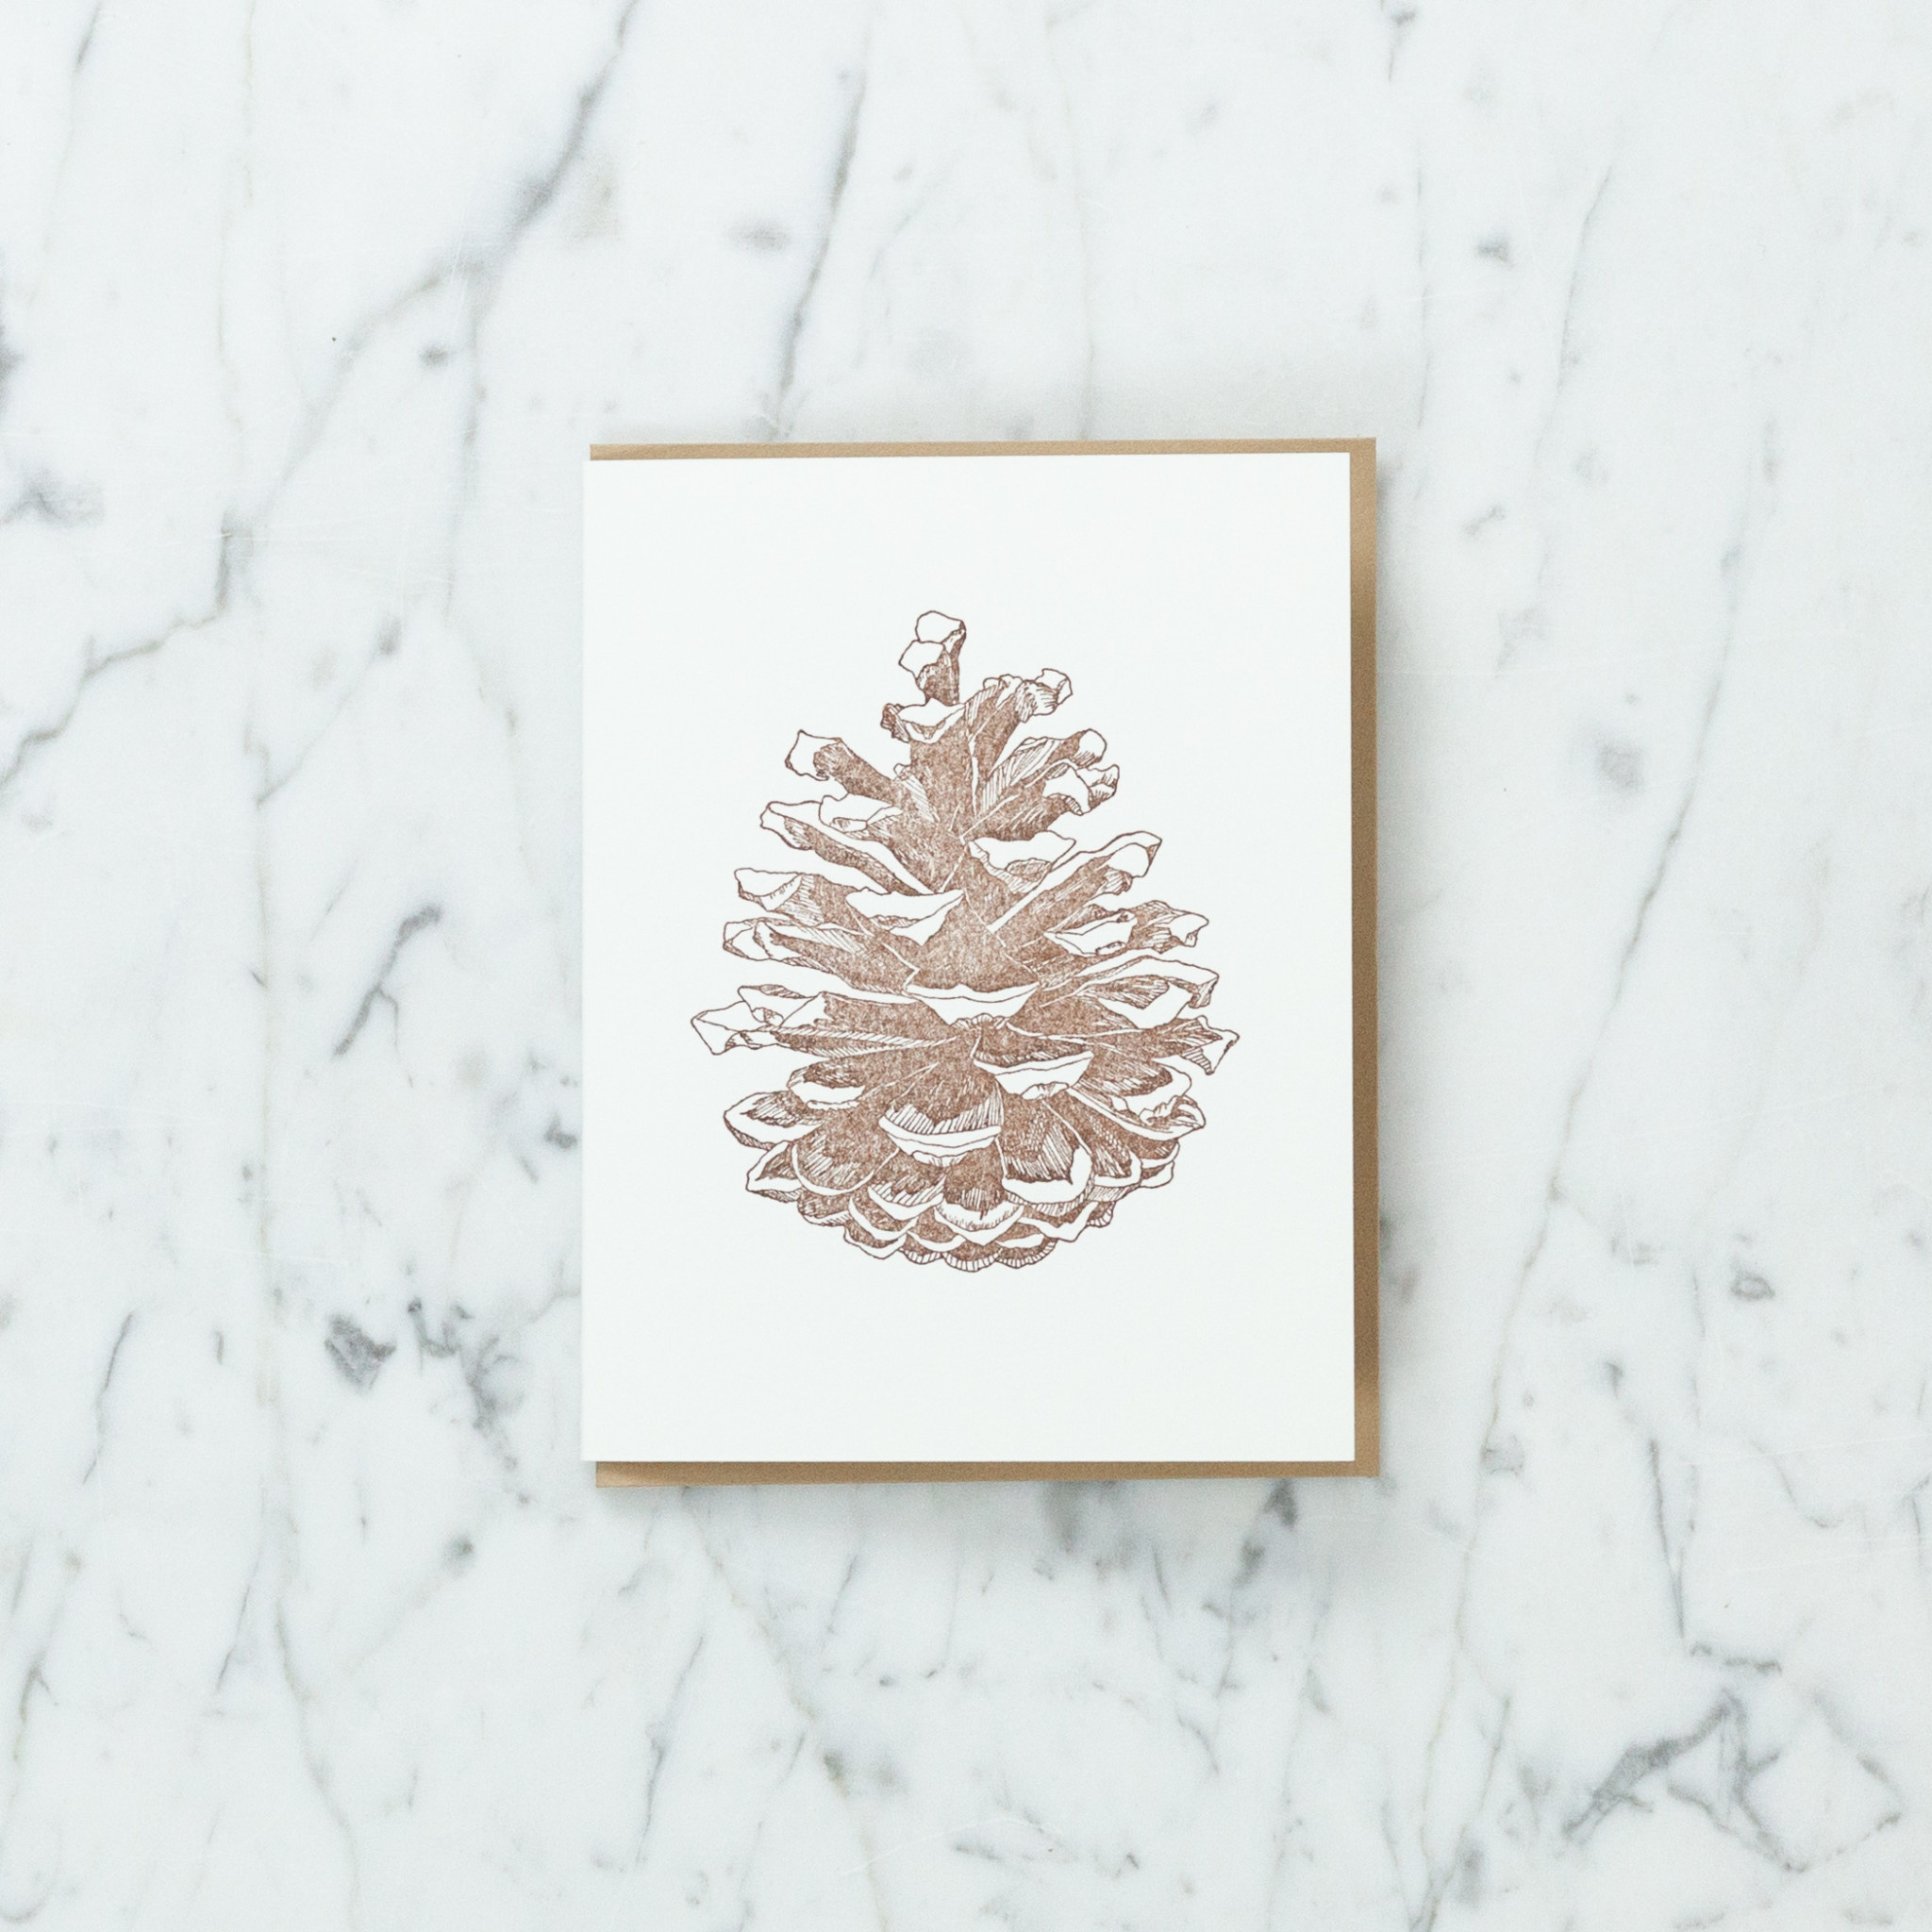 Loyal Supply Co Letterpress Pinecone Card